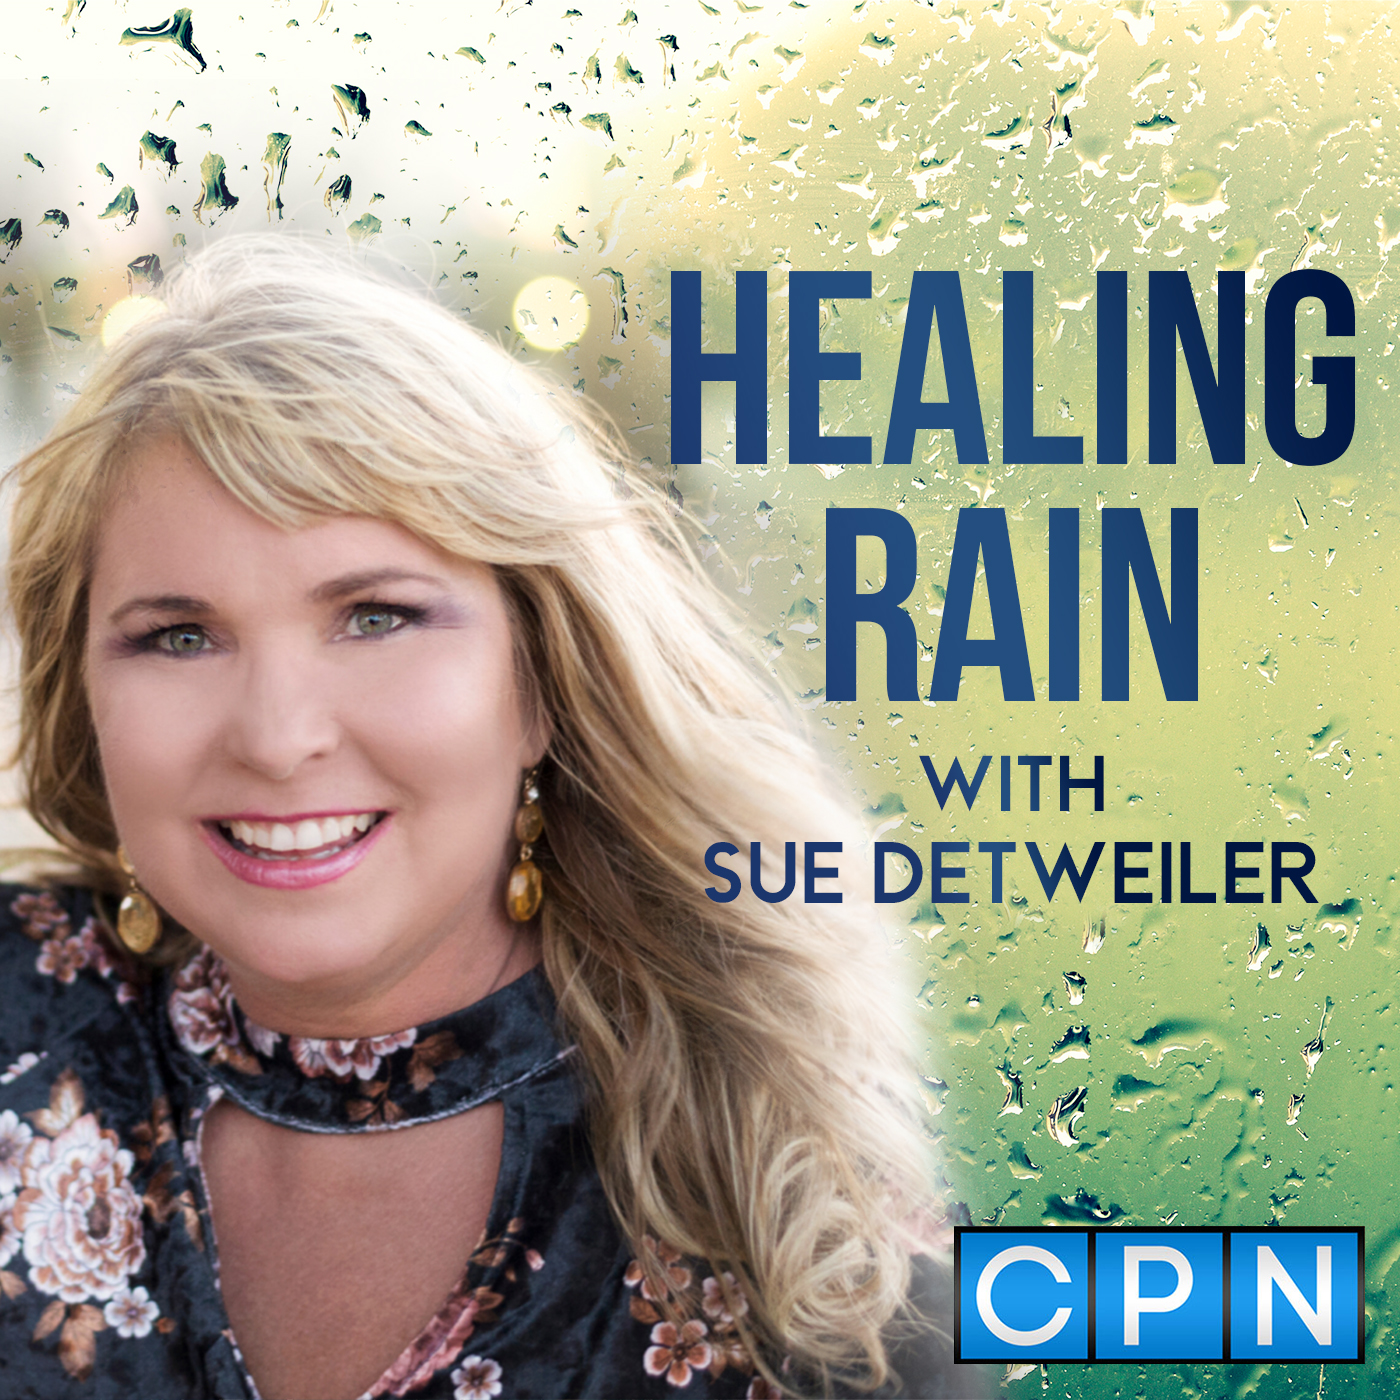 Sue Detweiler is podcast host on Charisma Podcast Network